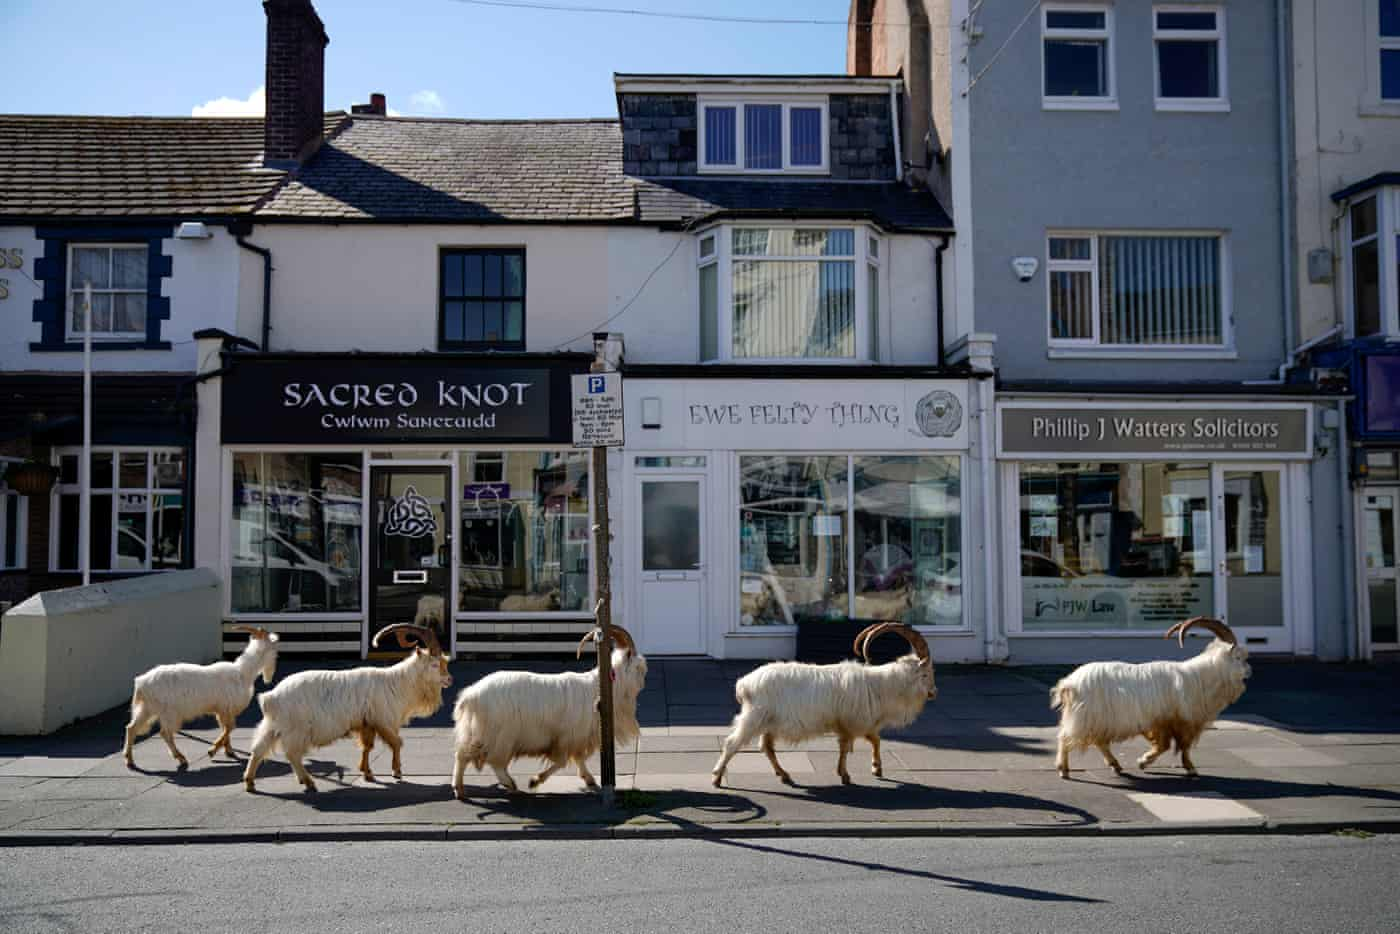 A group of white mountain goats walk in front of shops in the town centre of Llandudno